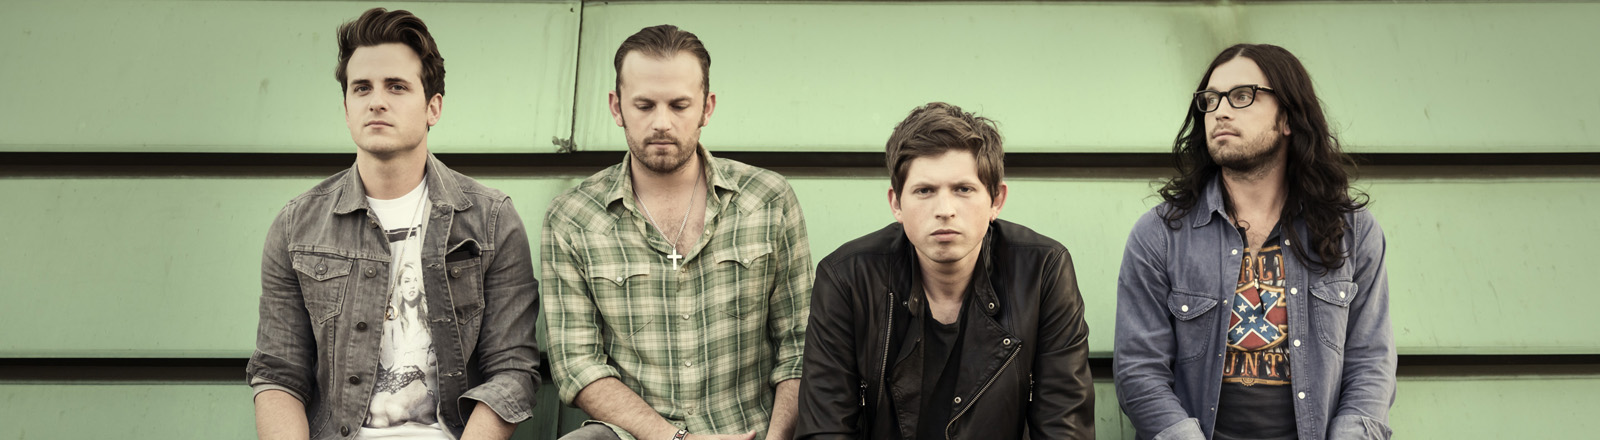 Die Band Kings of Leon